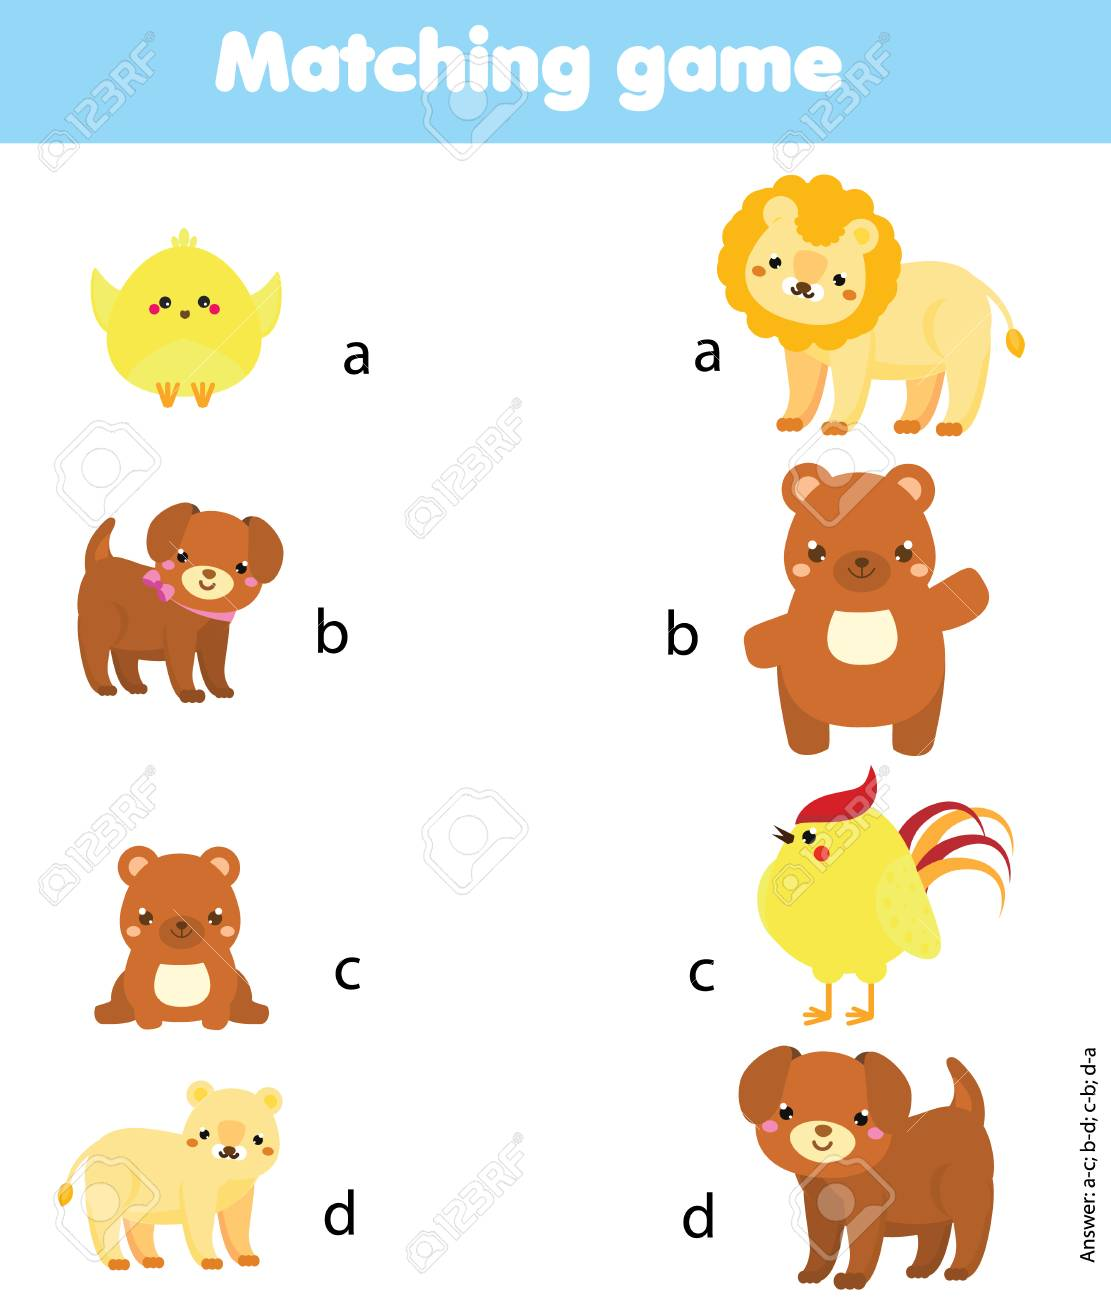 Matching Game Matching Game Match Animal Parent With Baby Royalty Free Cliparts Vectors And Stock Illustration Image 100952938